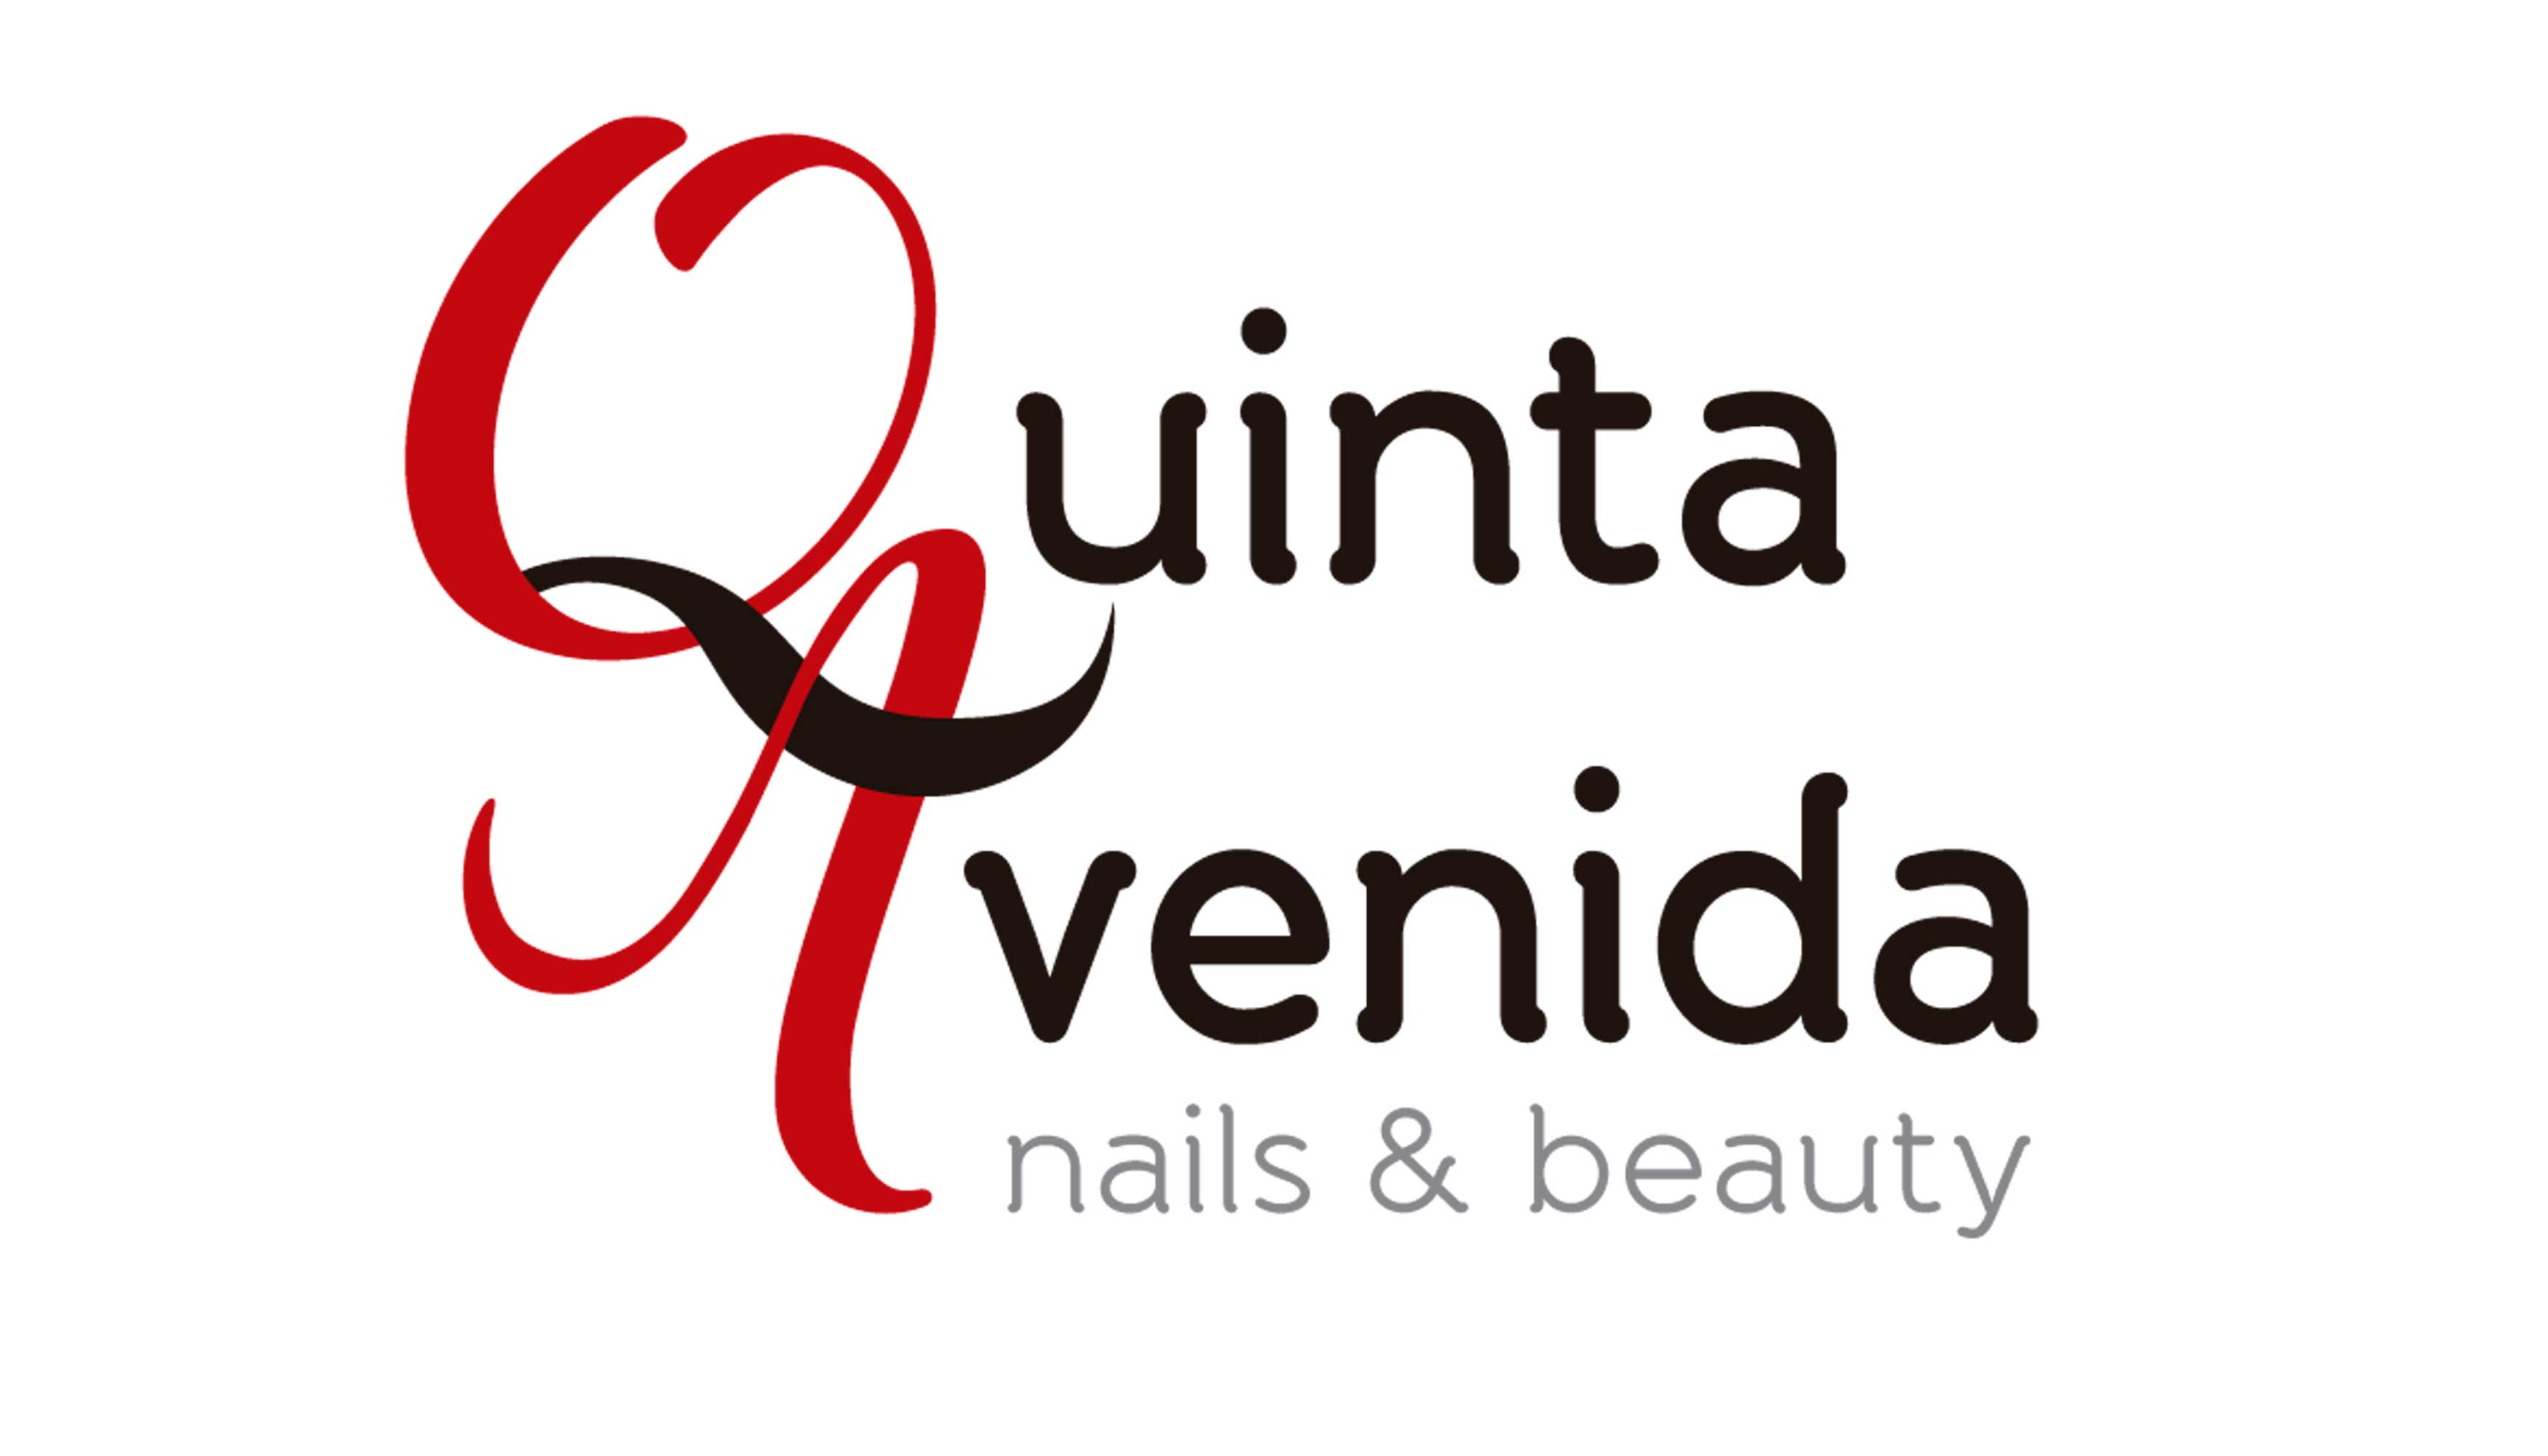 Quinta Avenida Nails & Beauty